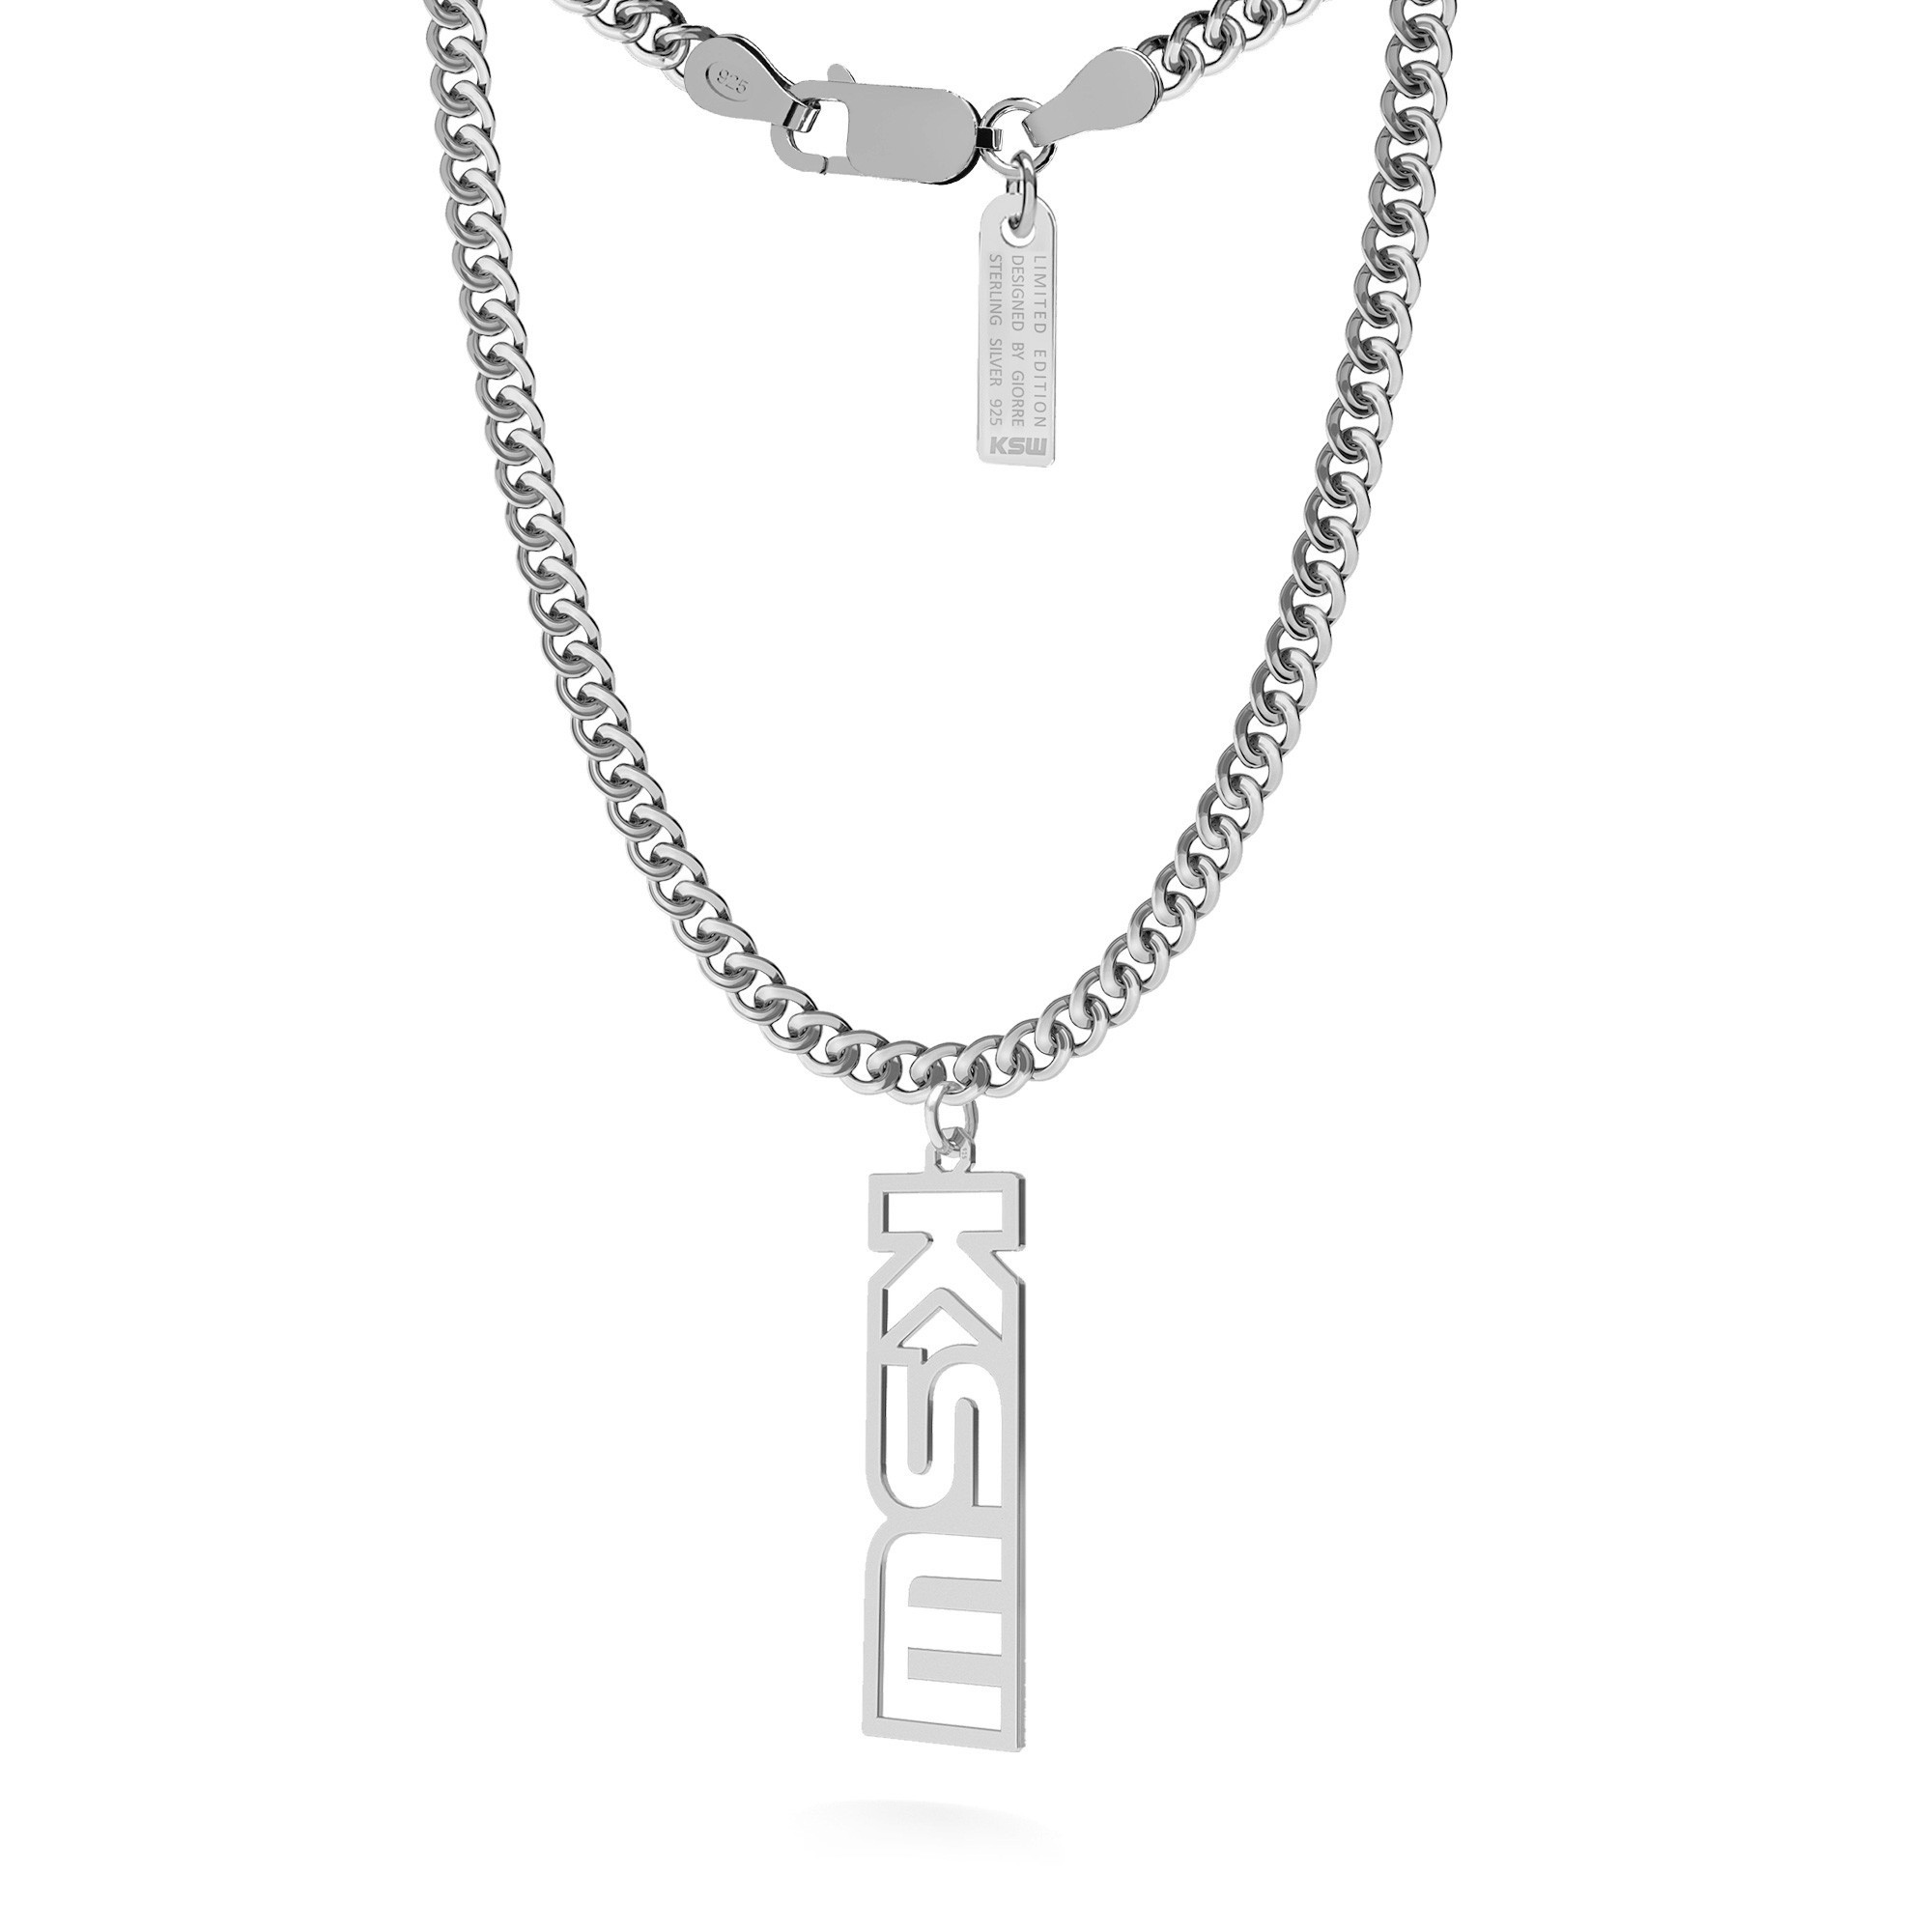 Vertical pendant necklace, KSW logo, curb chain, silver 925